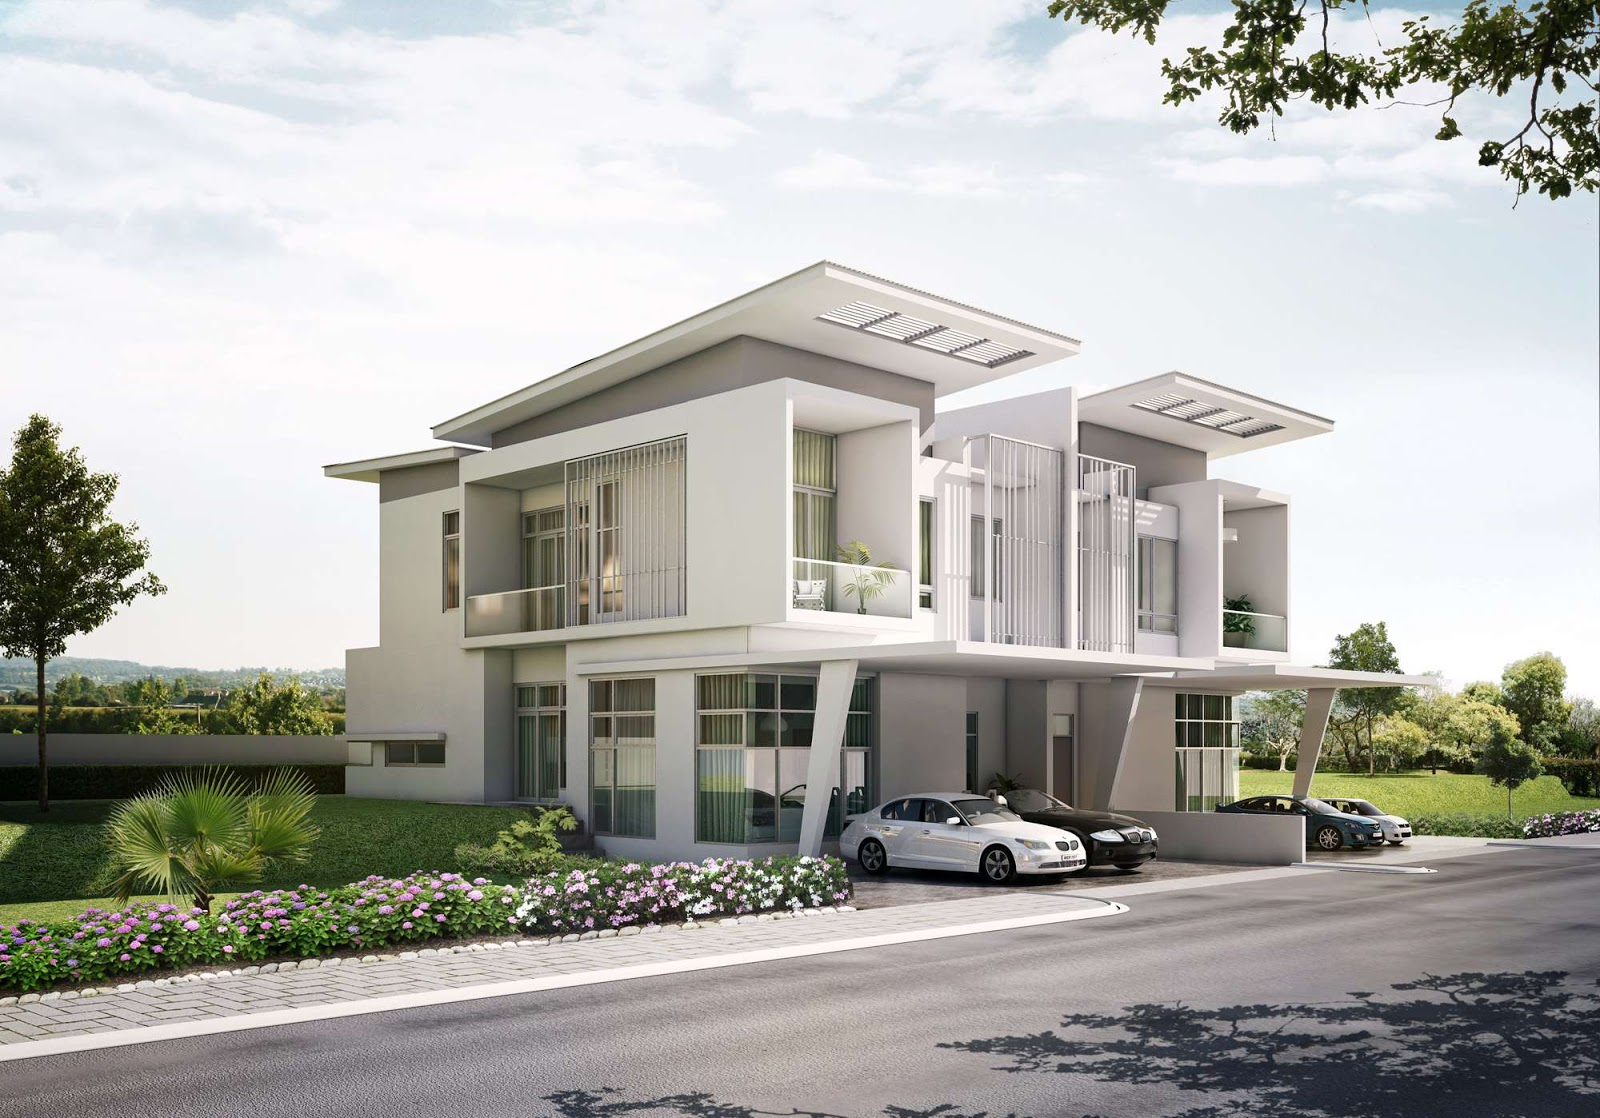 New home designs latest singapore modern homes exterior for Modern exterior house entrance